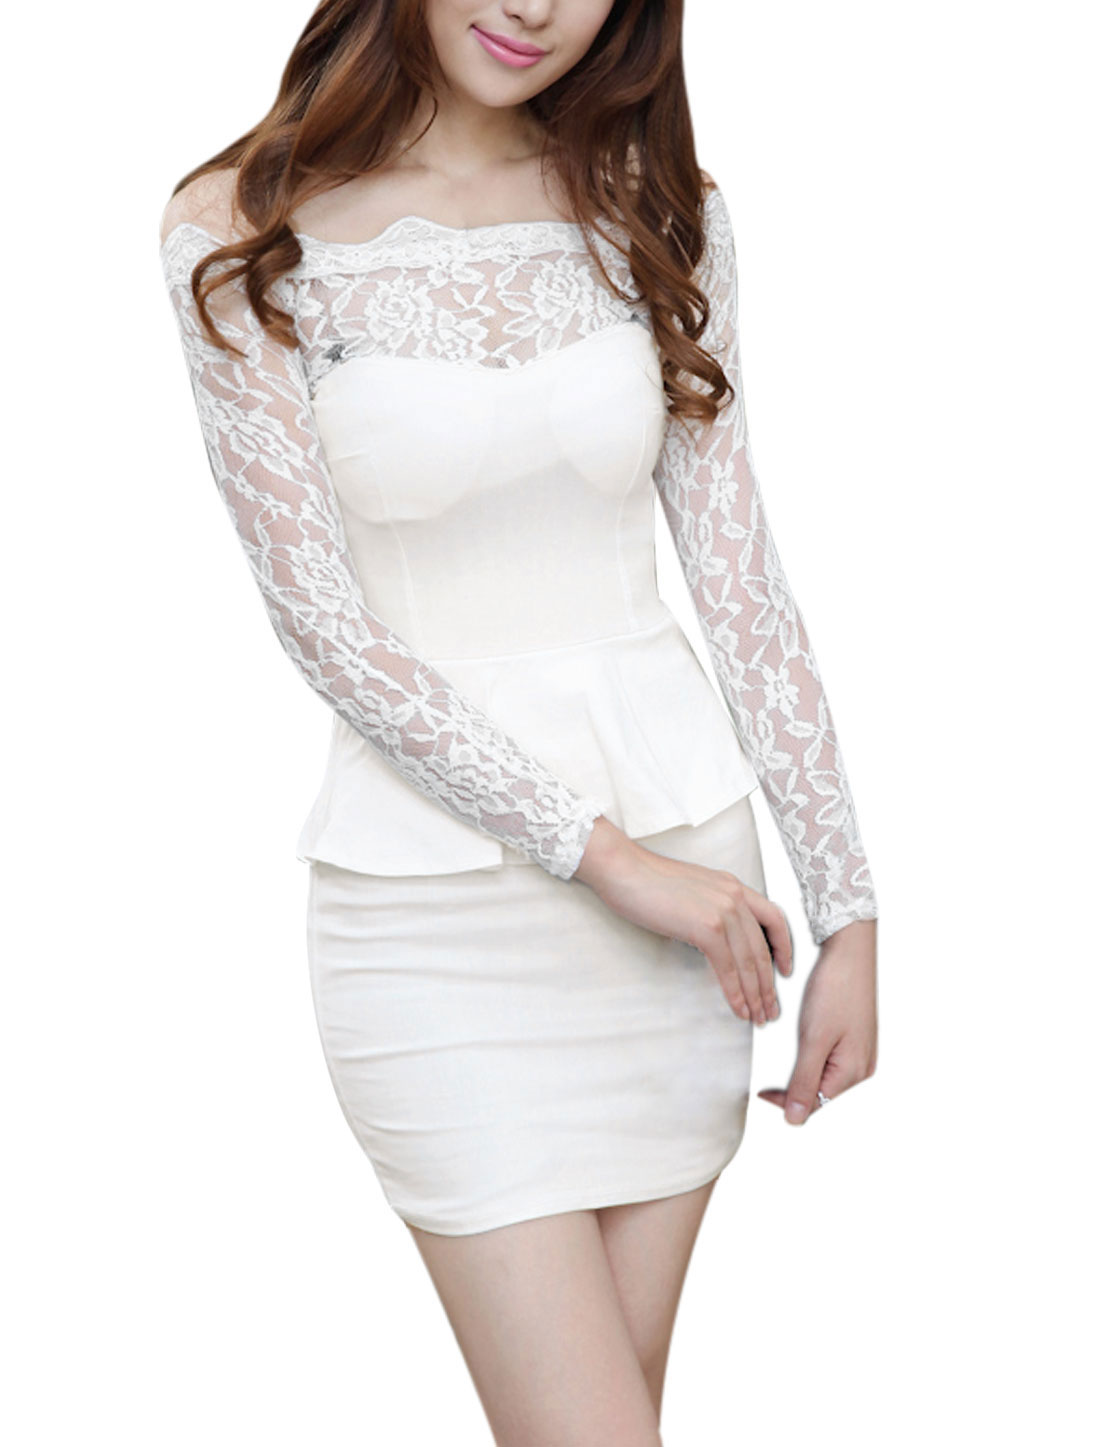 Ladies White Lace Splice Slipover Padded Bust Layered Slim Fit Dress XS